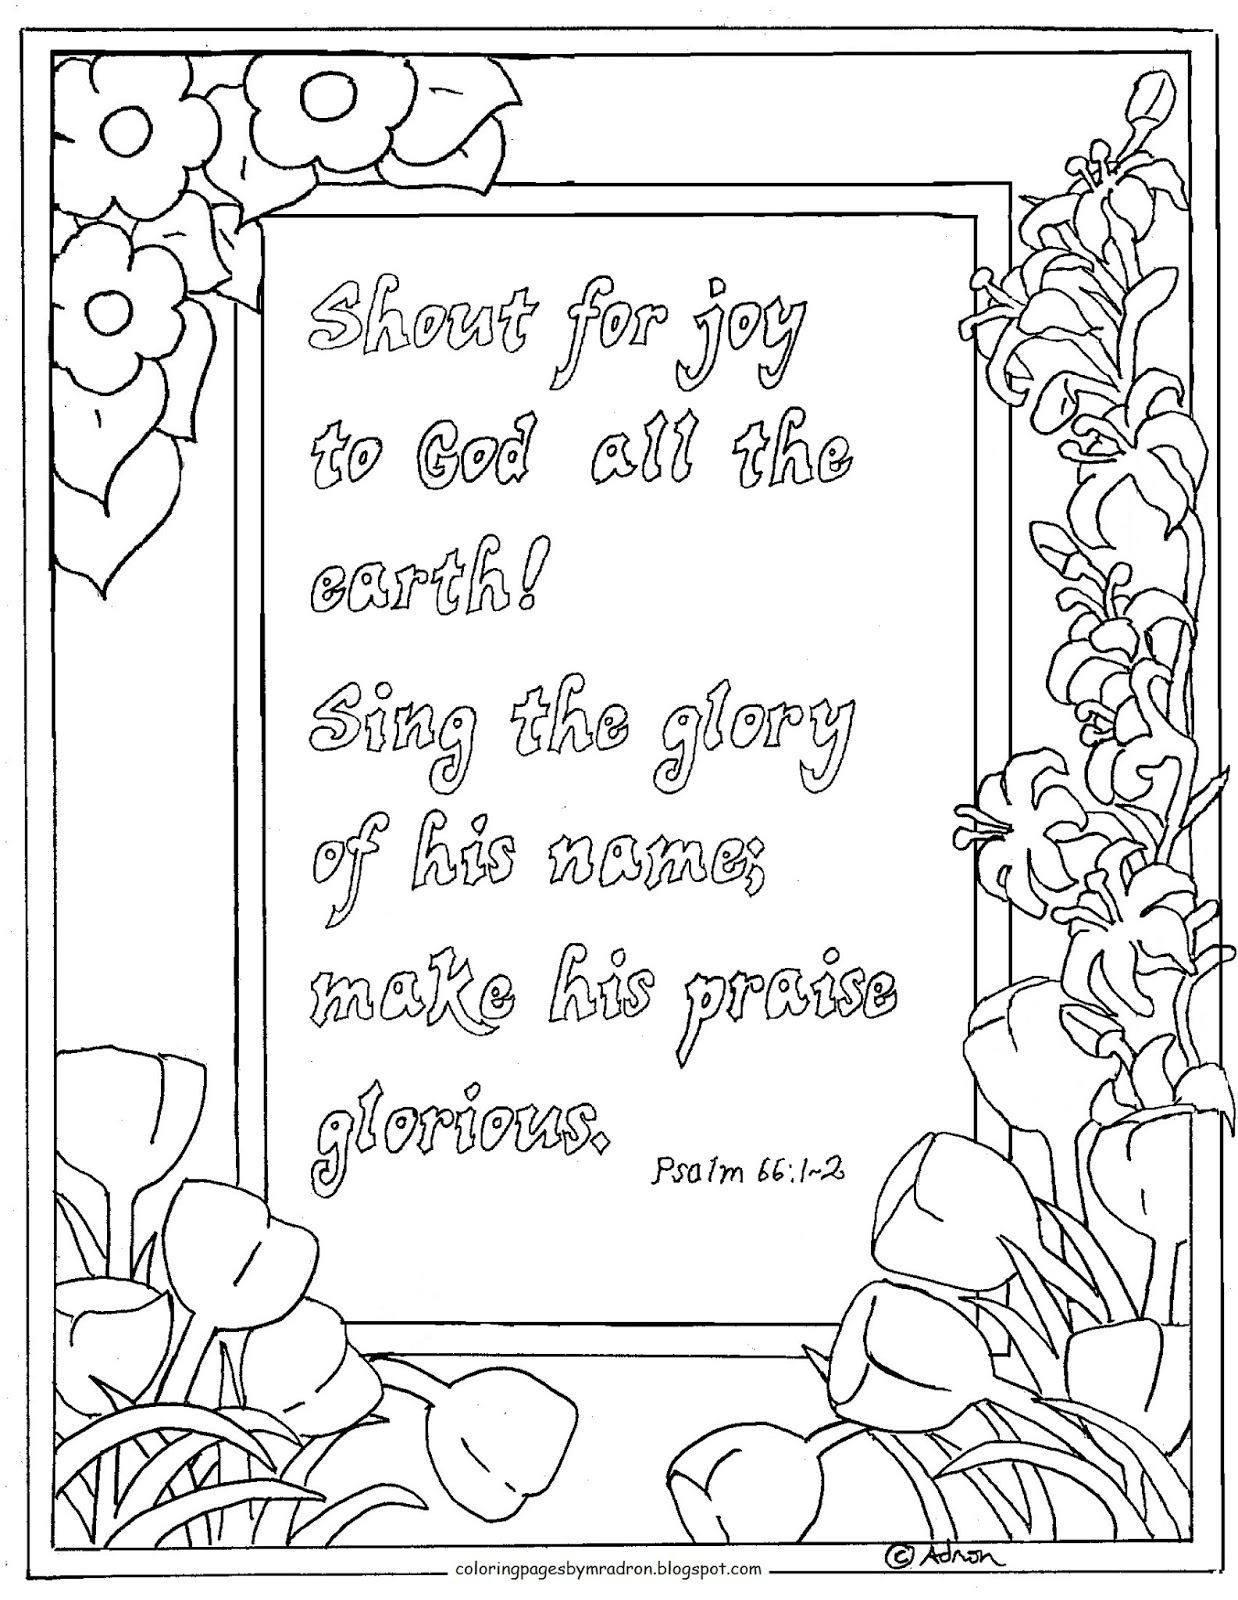 coloring pages for kids by mr adron shout for joy psalm 66 1 2